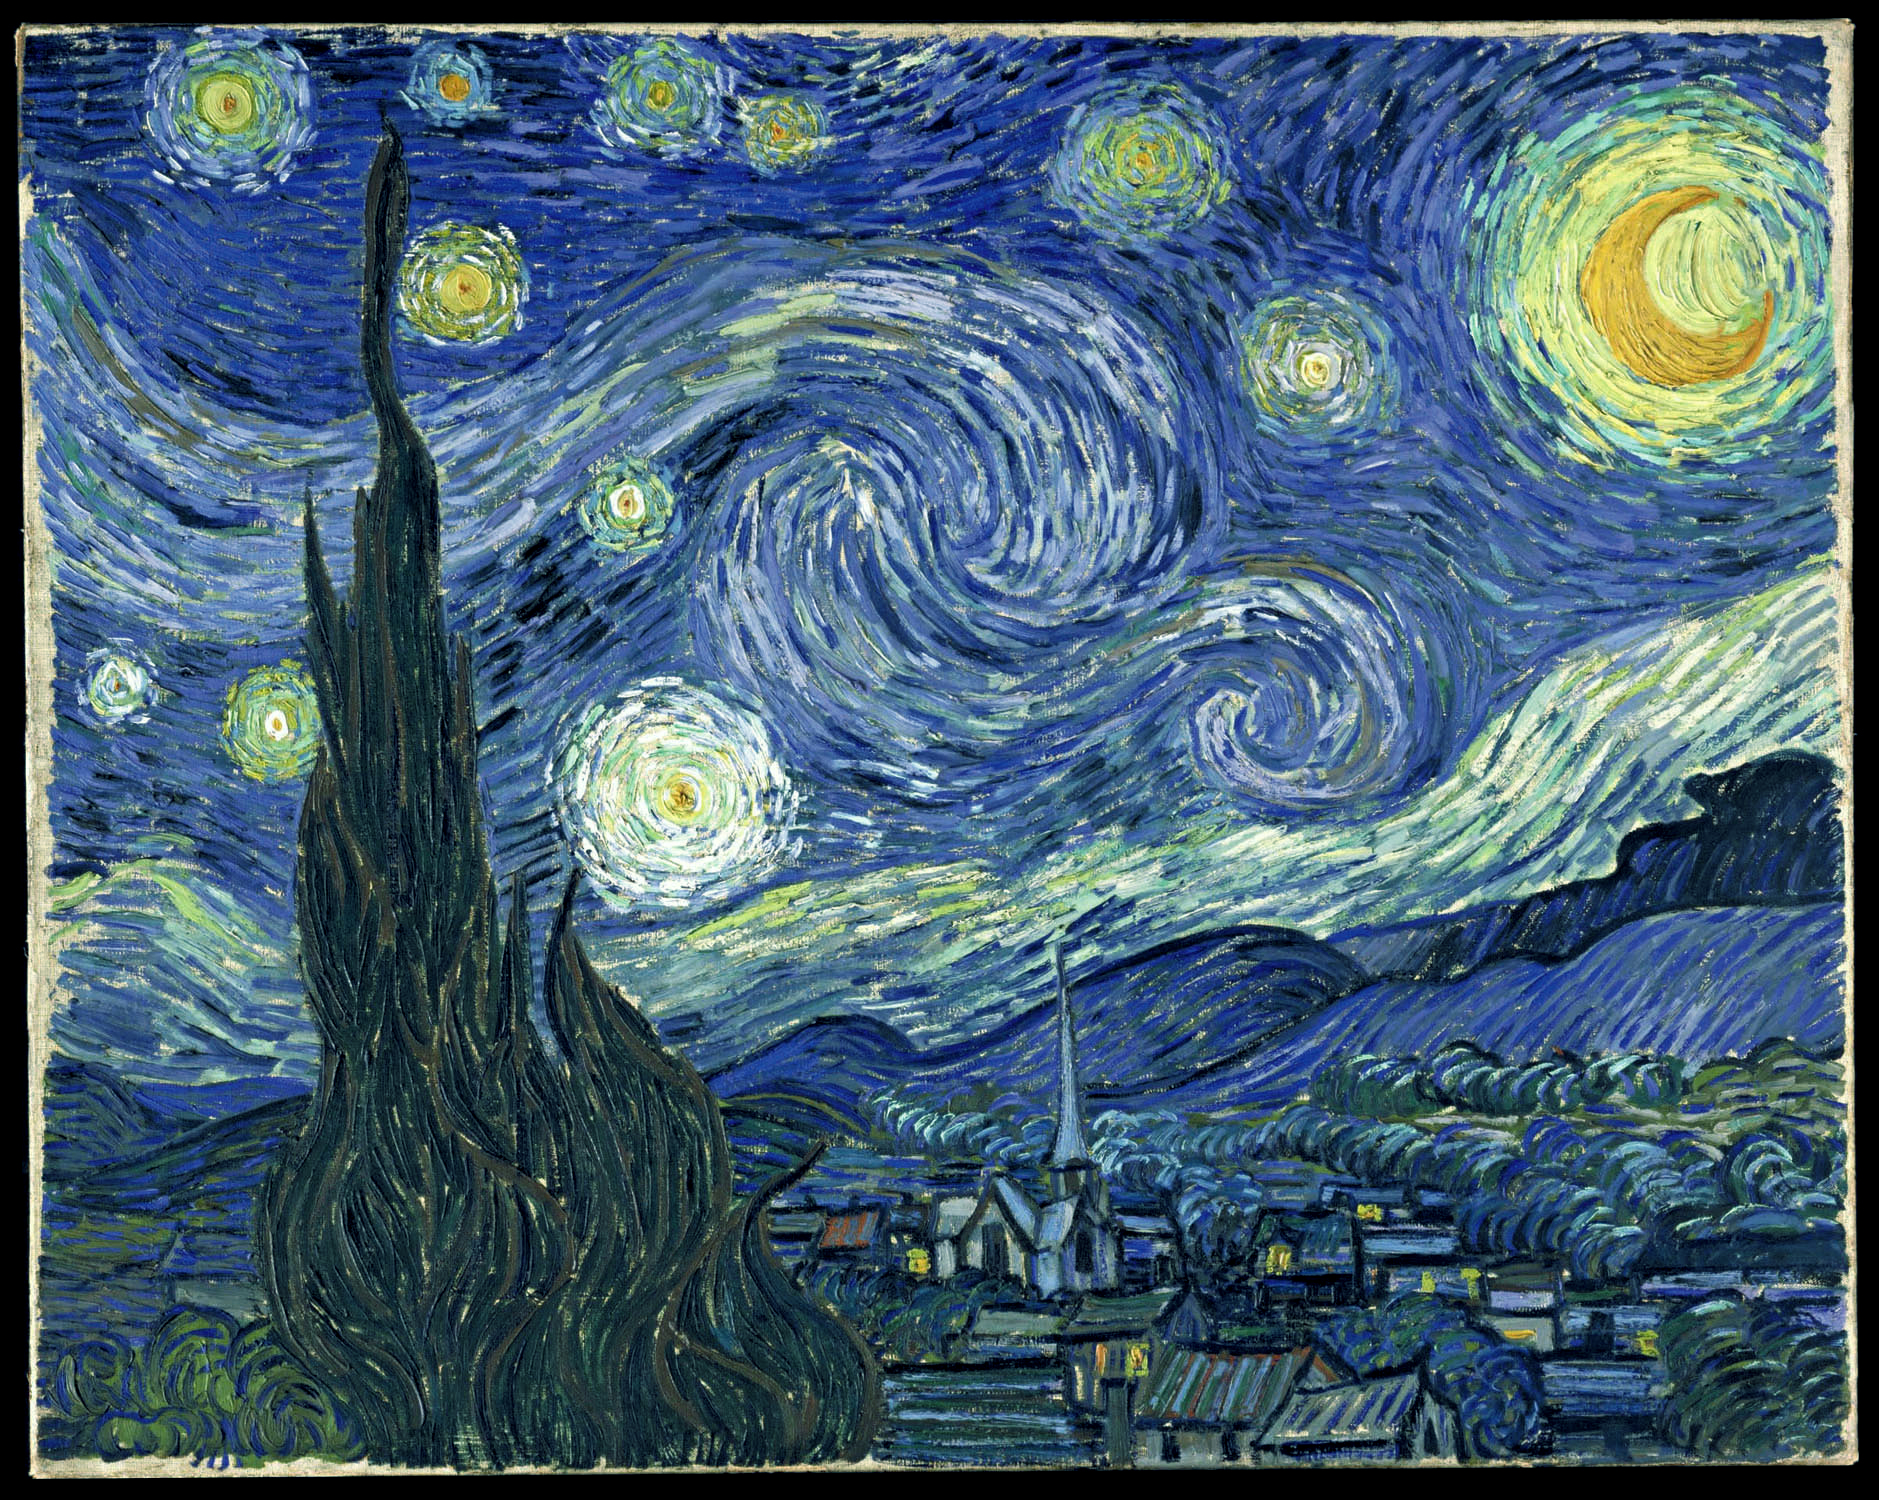 https://i2.wp.com/upload.wikimedia.org/wikipedia/commons/6/66/VanGogh-starry_night_ballance1.jpg